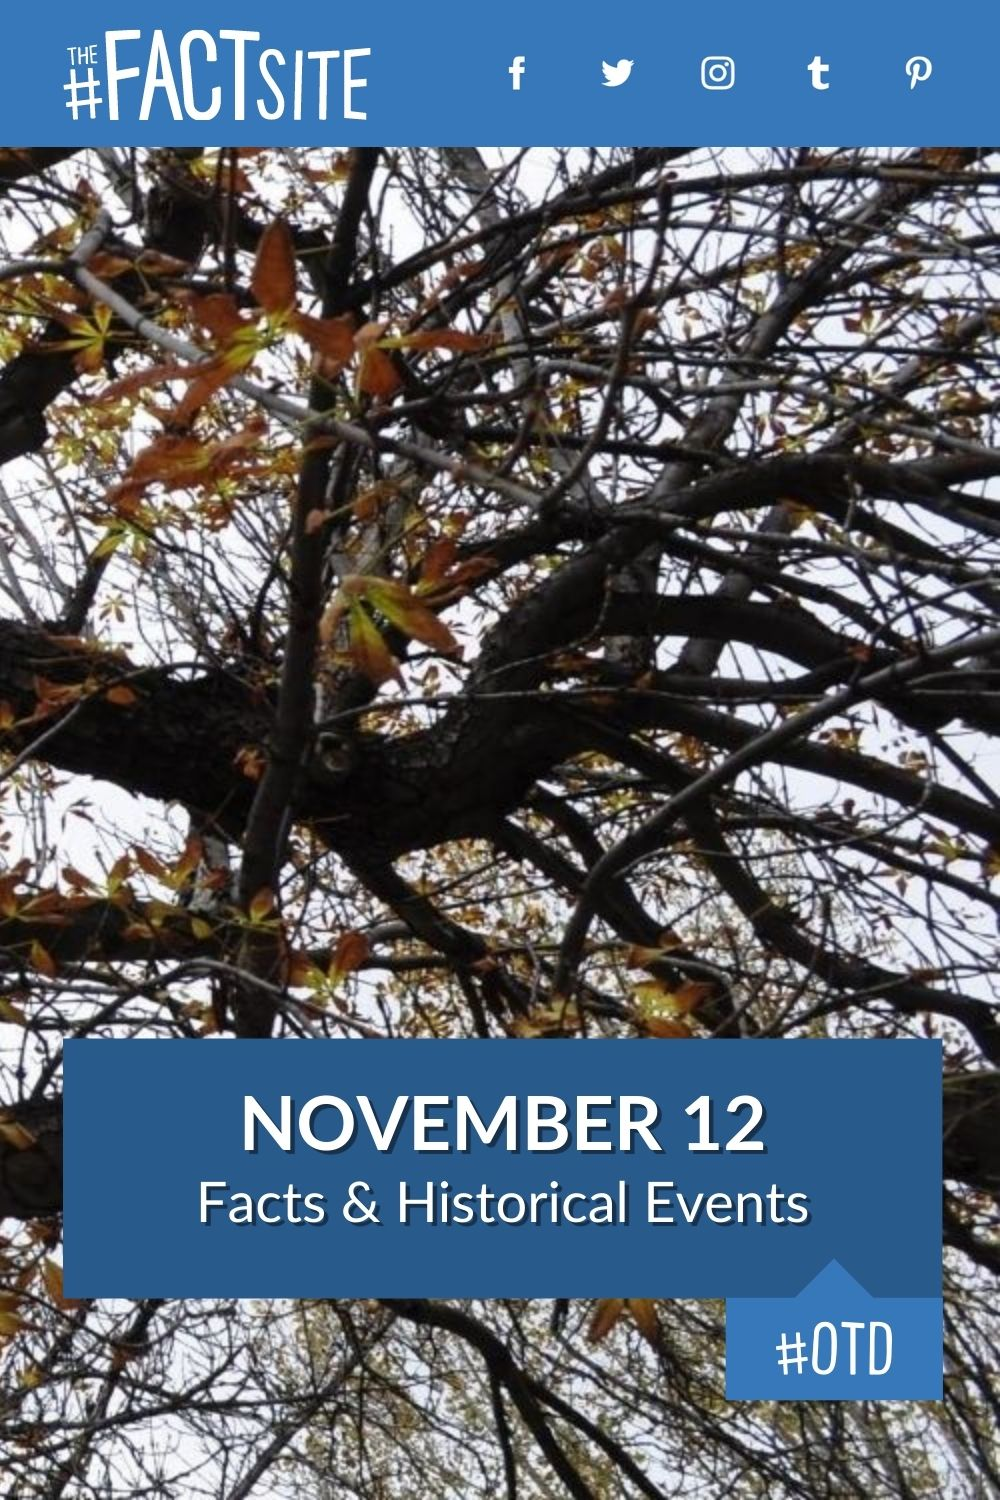 Facts & Historic Events That Happened on November 12